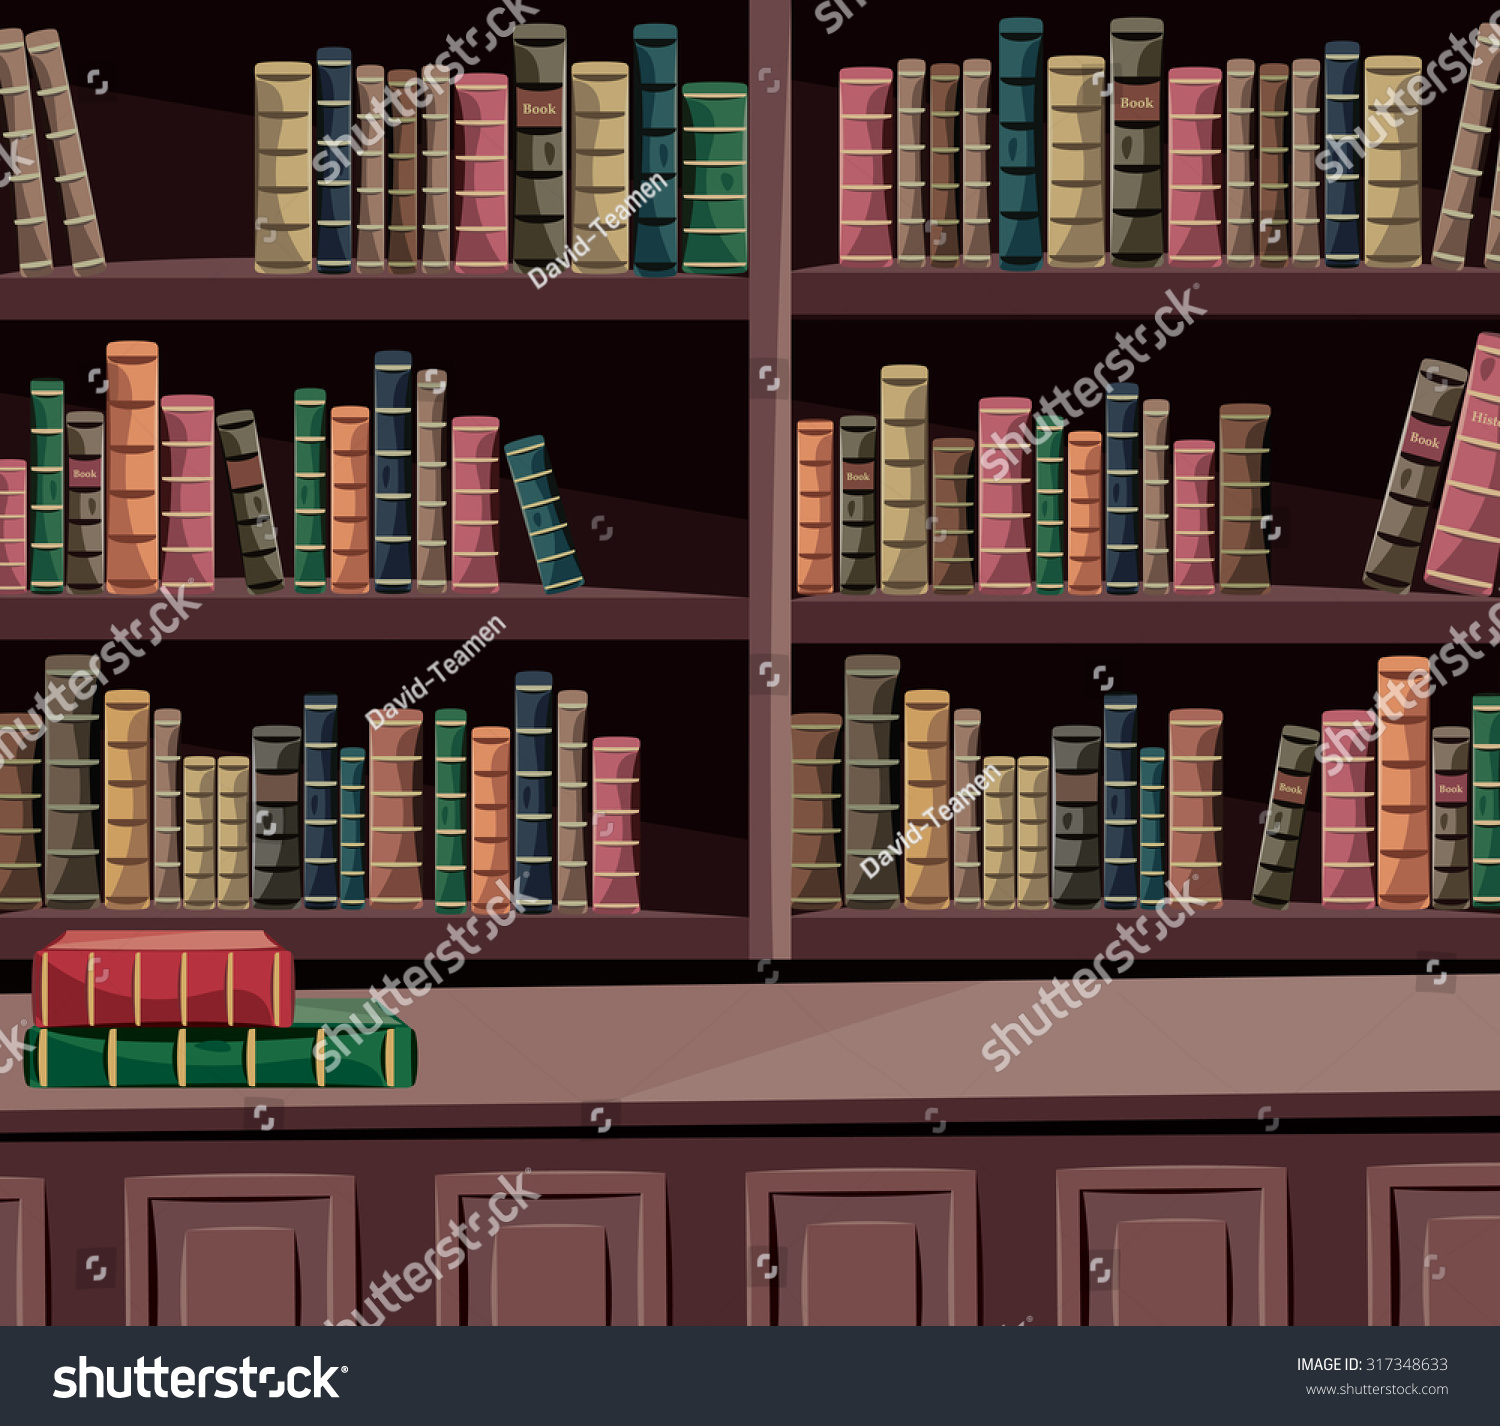 Interior historical library with old books Encyclopedia